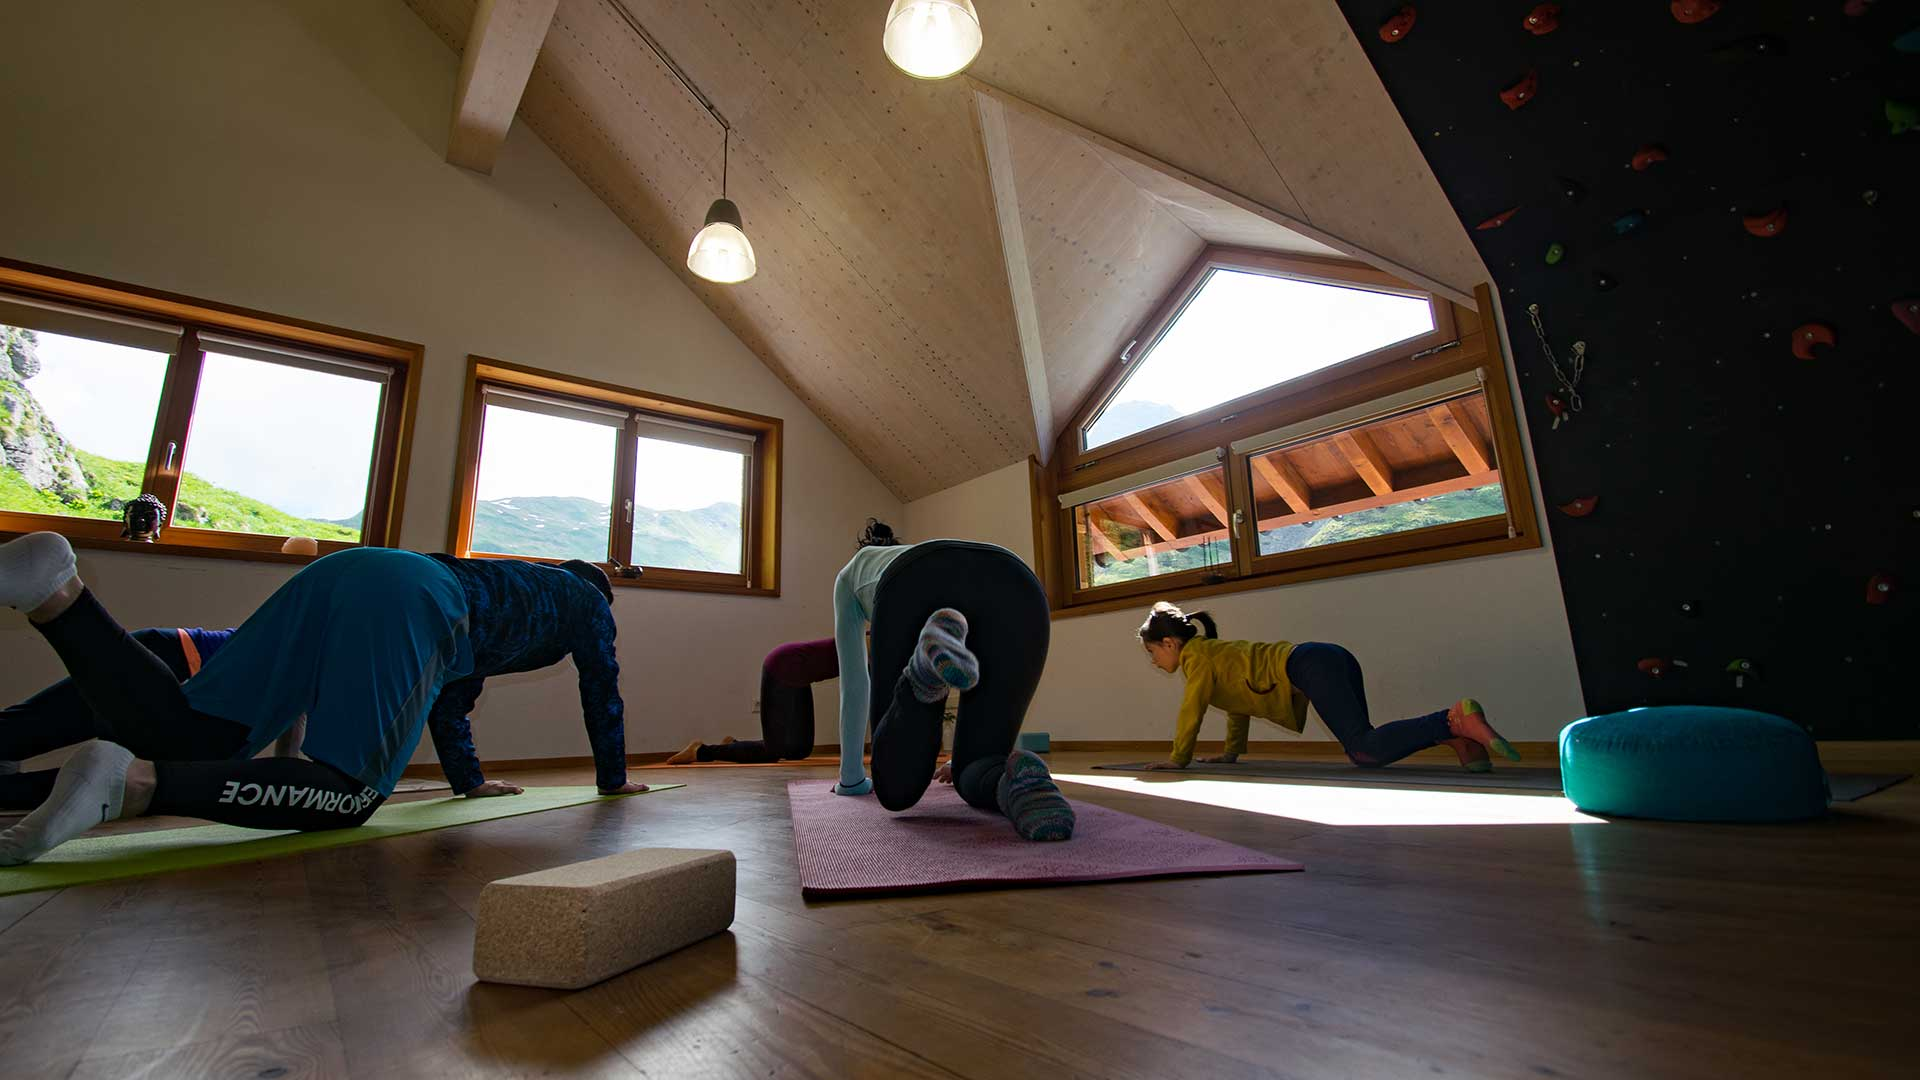 Yoga Retreat in der Energiezone der Lechquellen